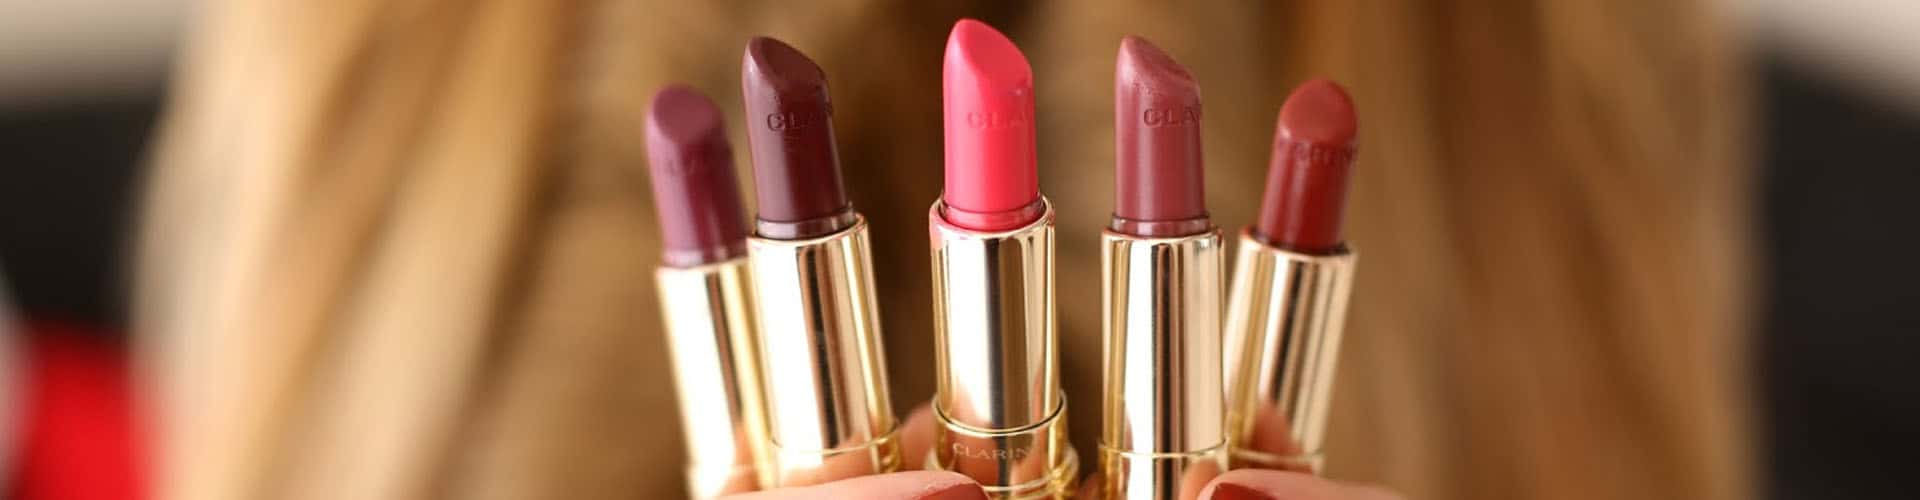 Best Matte Lipstick 2019 – Buyer's Guide and Reviews